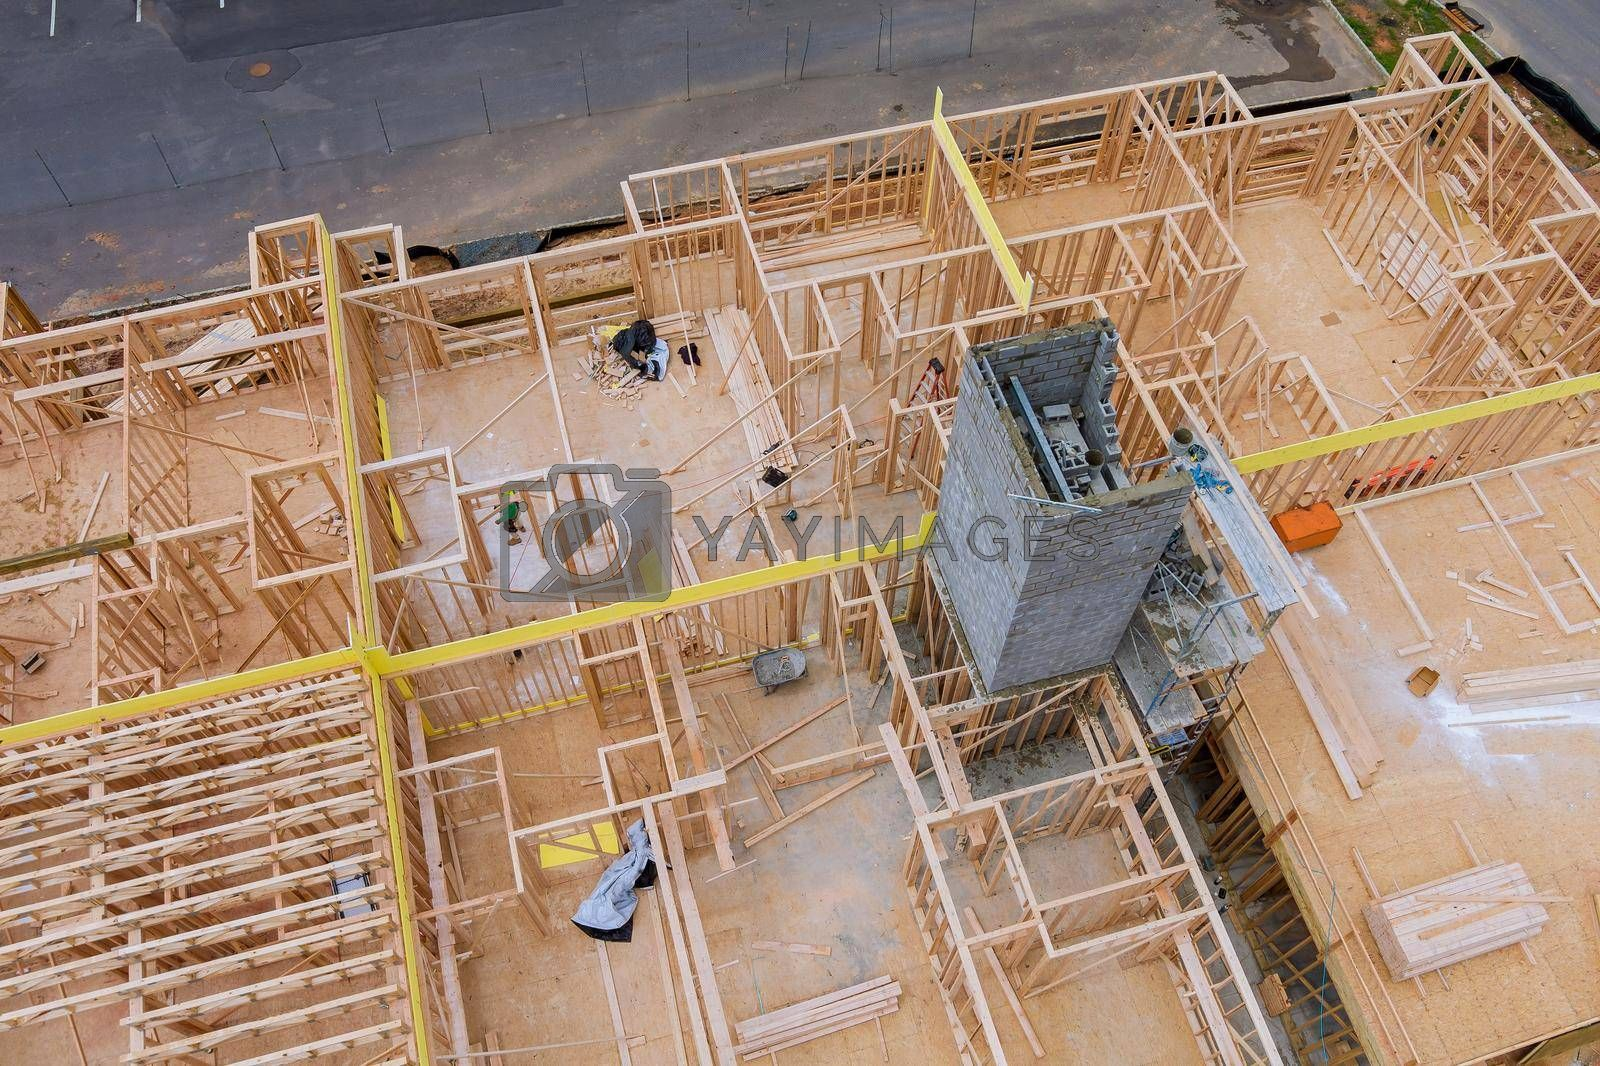 Aerial view of exterior unfinished a house residential construction wall on framing against